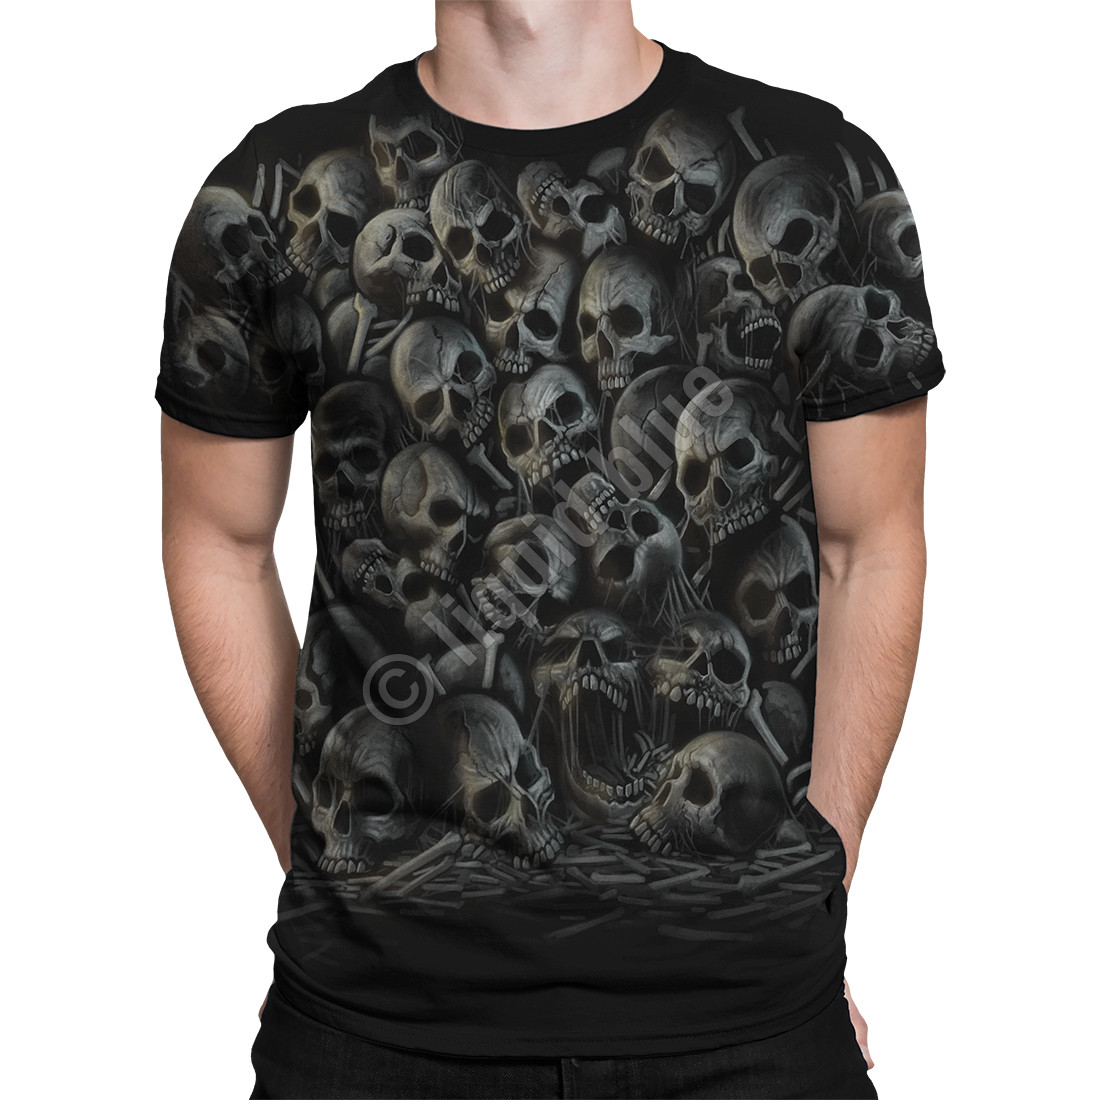 All Over Skulls Black T-Shirt